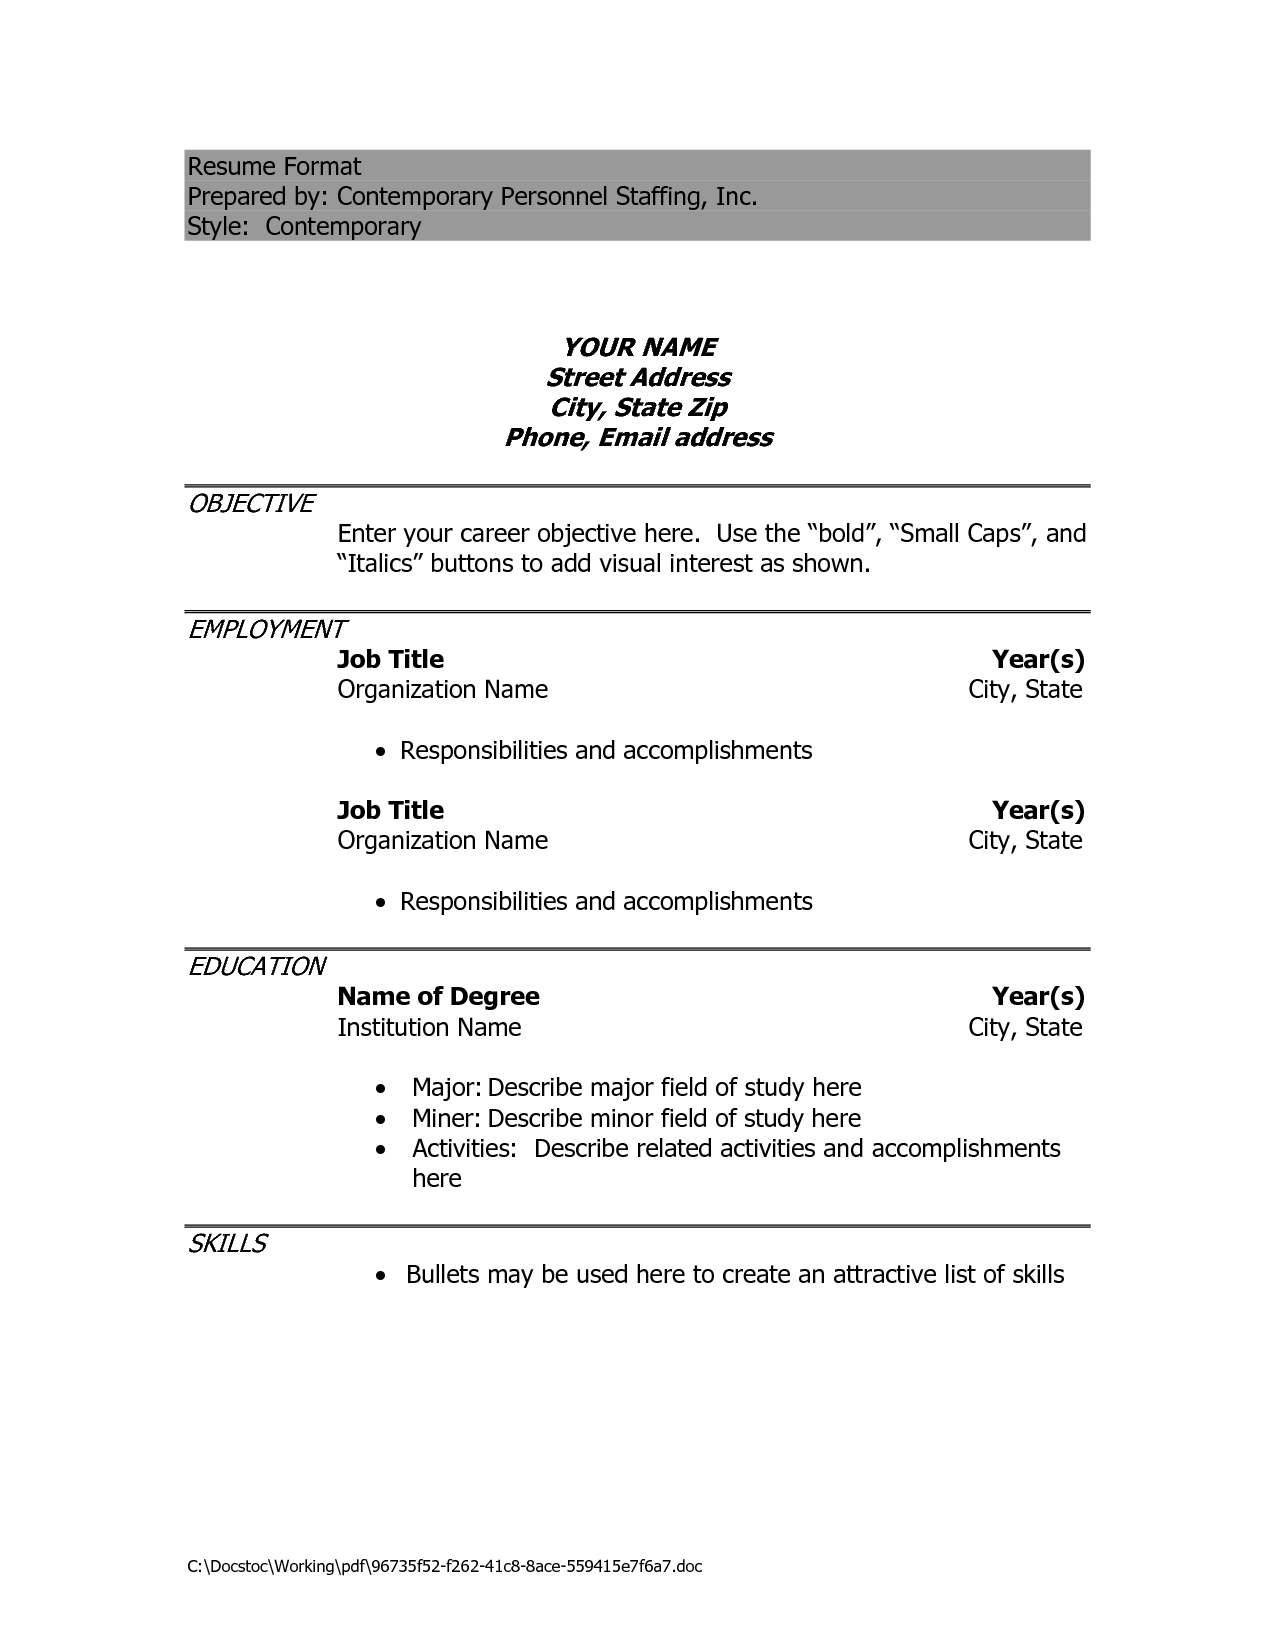 Resume Template Doc Resume Format For Teachers Doc File Resume Format For Teachers Doc